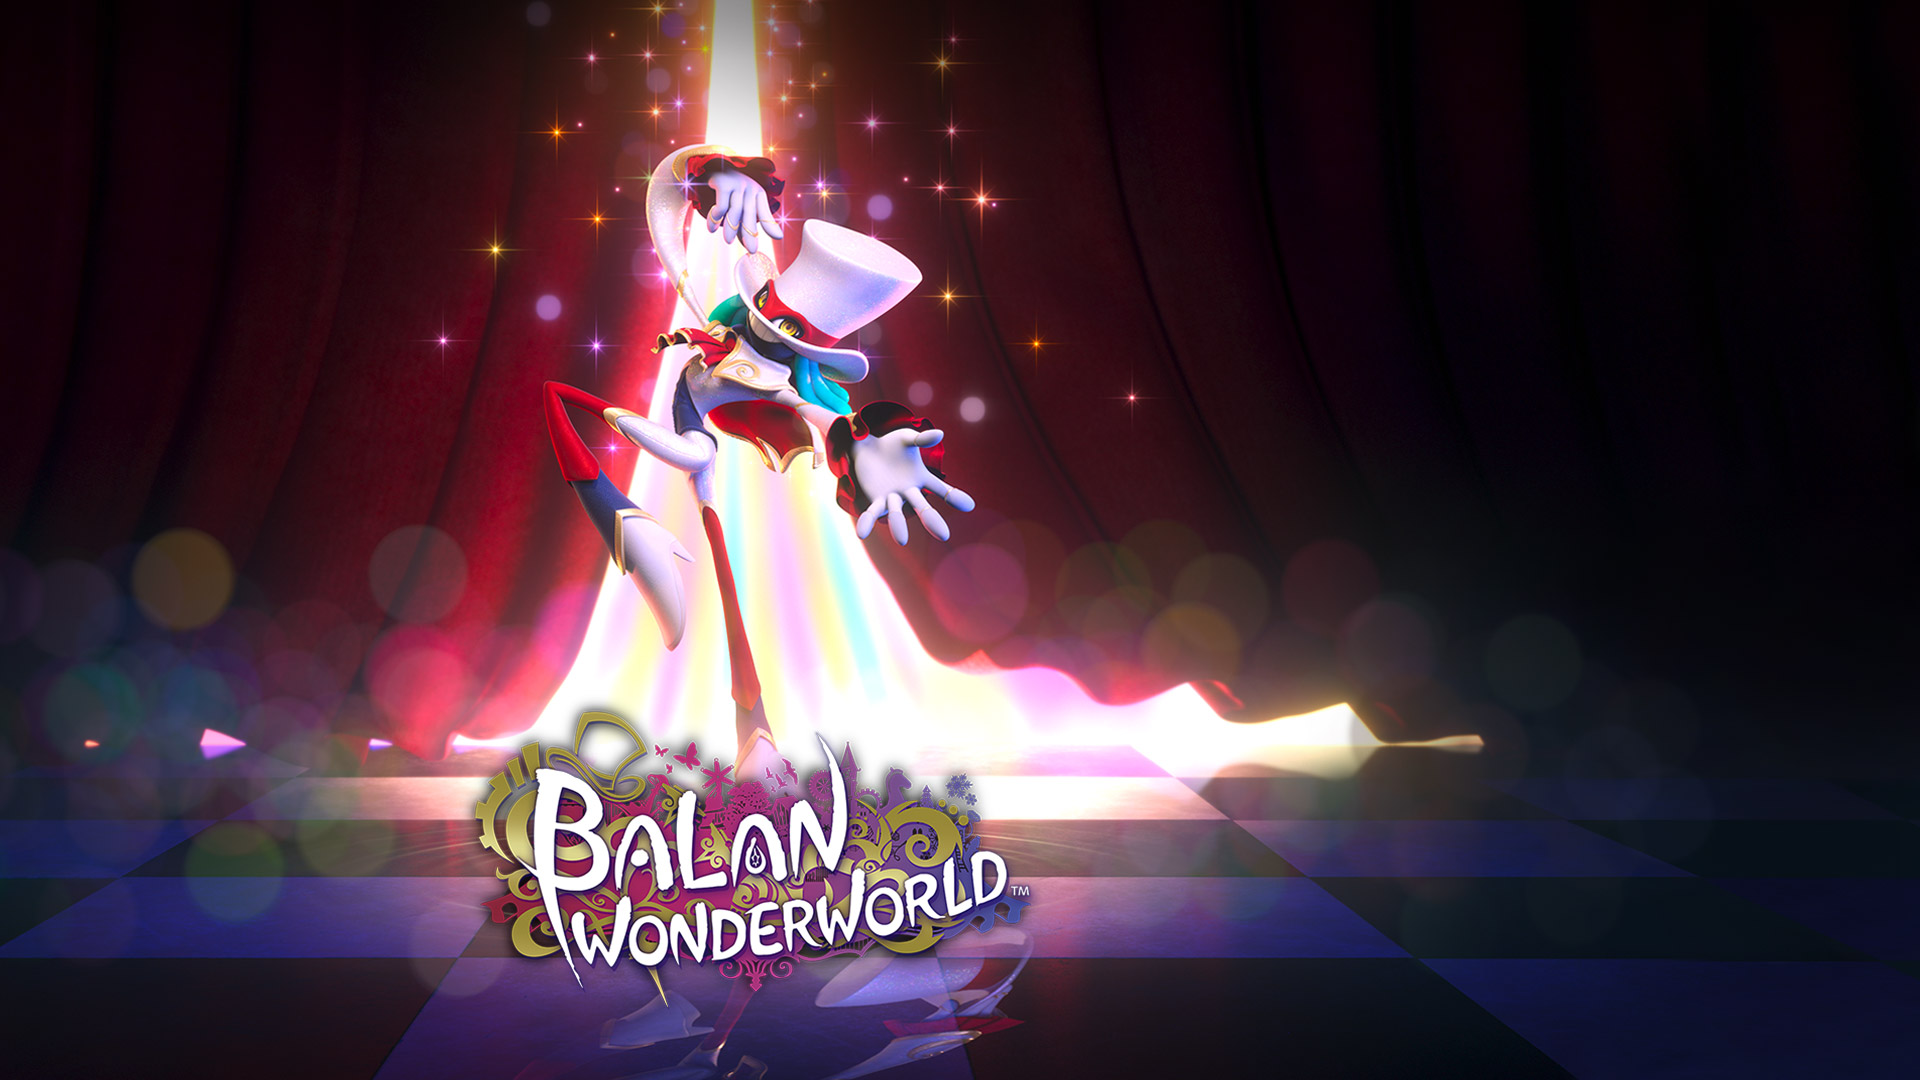 Balan Wonderworld, A well-dressed demon flourishes on a stage in front of red velvet curtains.